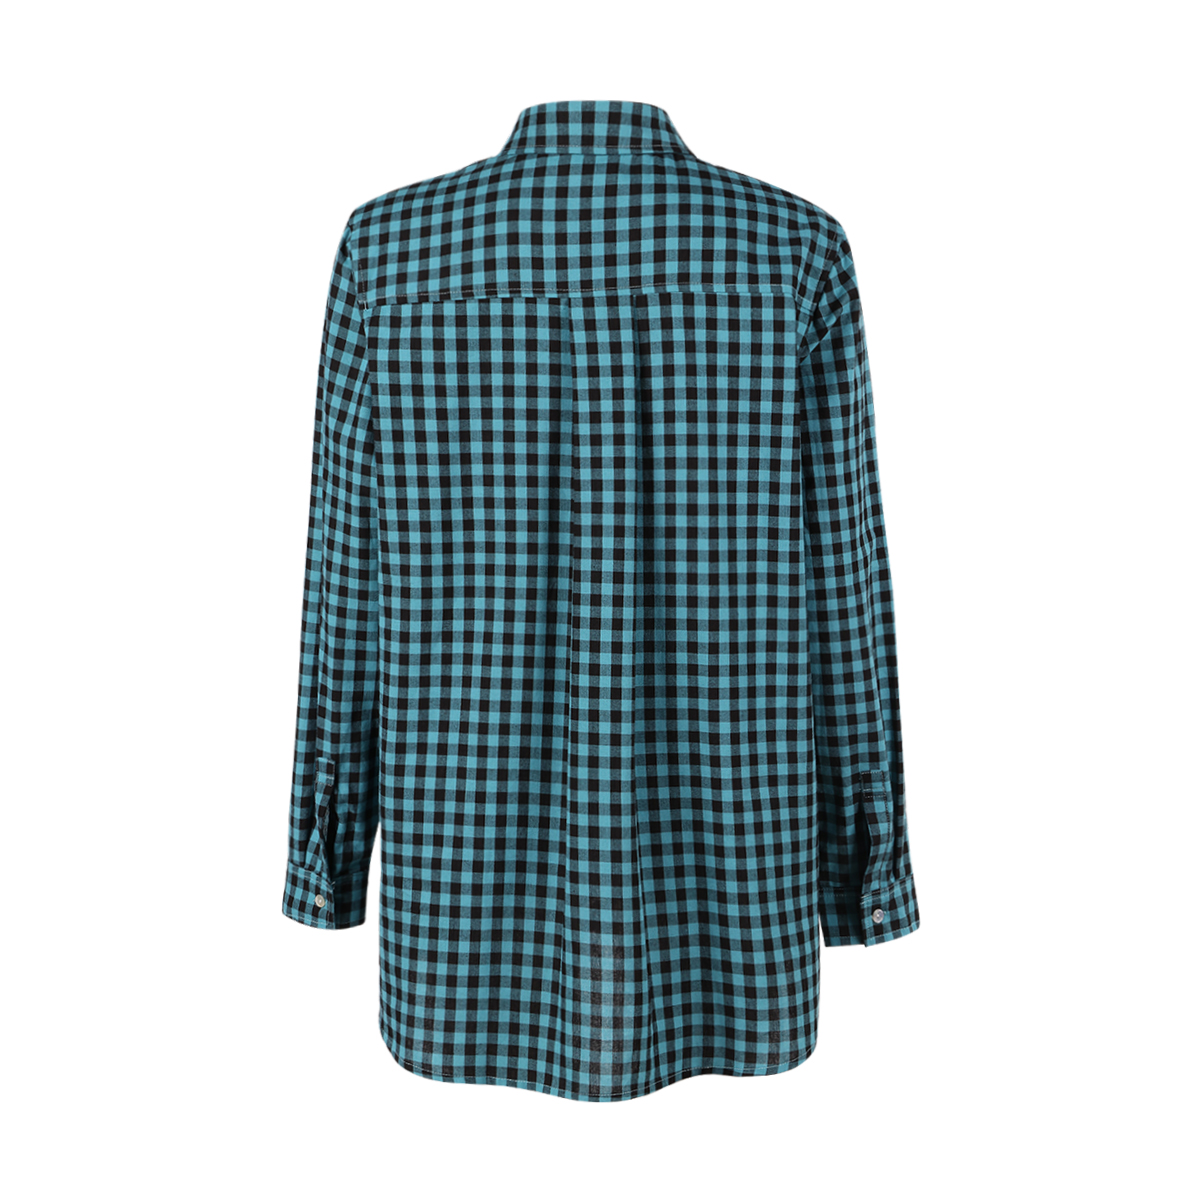 MCO Autumn Basic Plus Size Check Top For Office Ladies Simple Oversized Women Blouse Classic Plaid Shirt Big Size 5xl 6xl 7xl 1